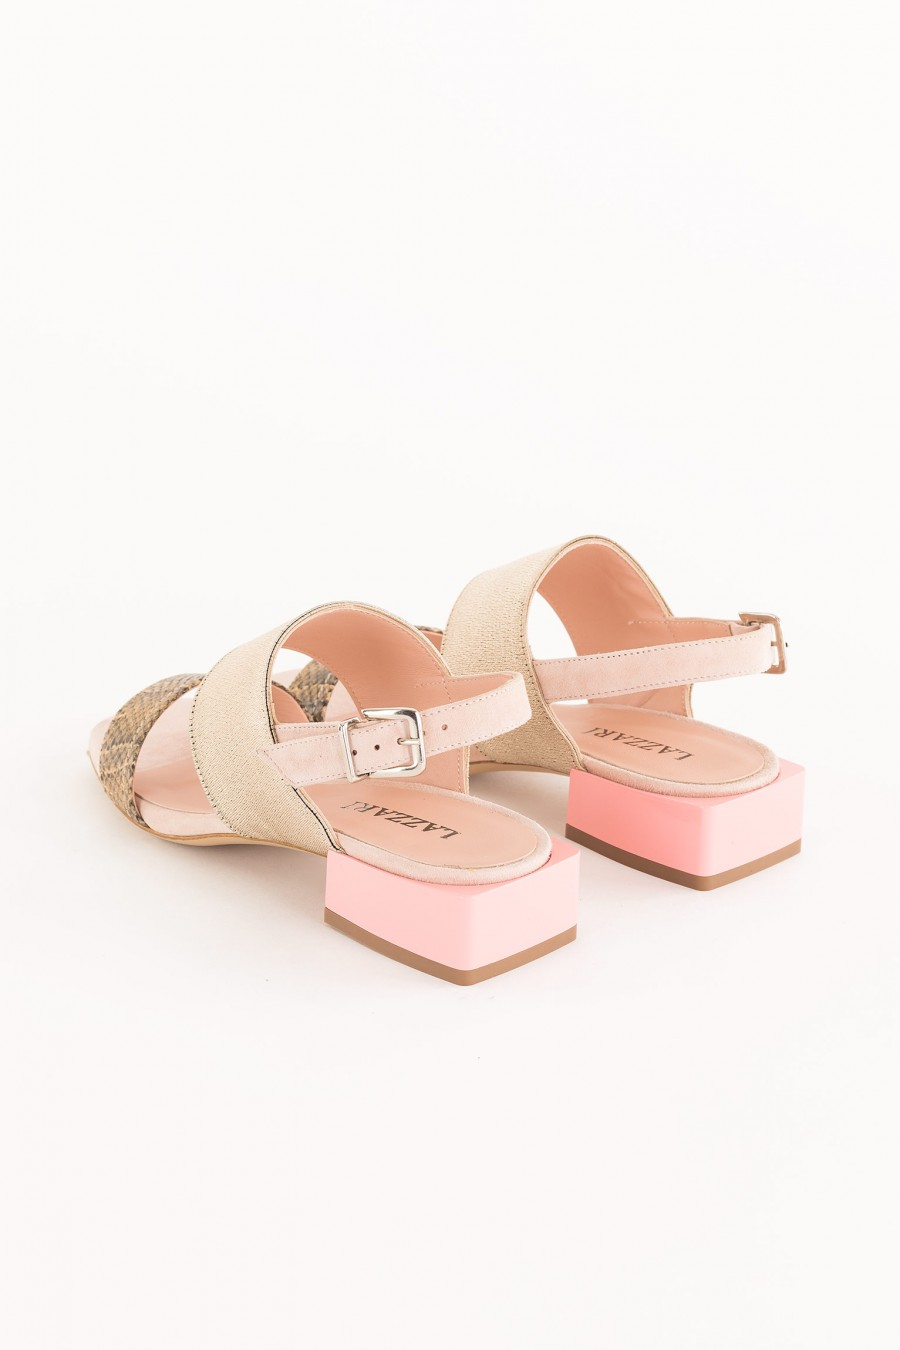 bimaterial sandals with square heel